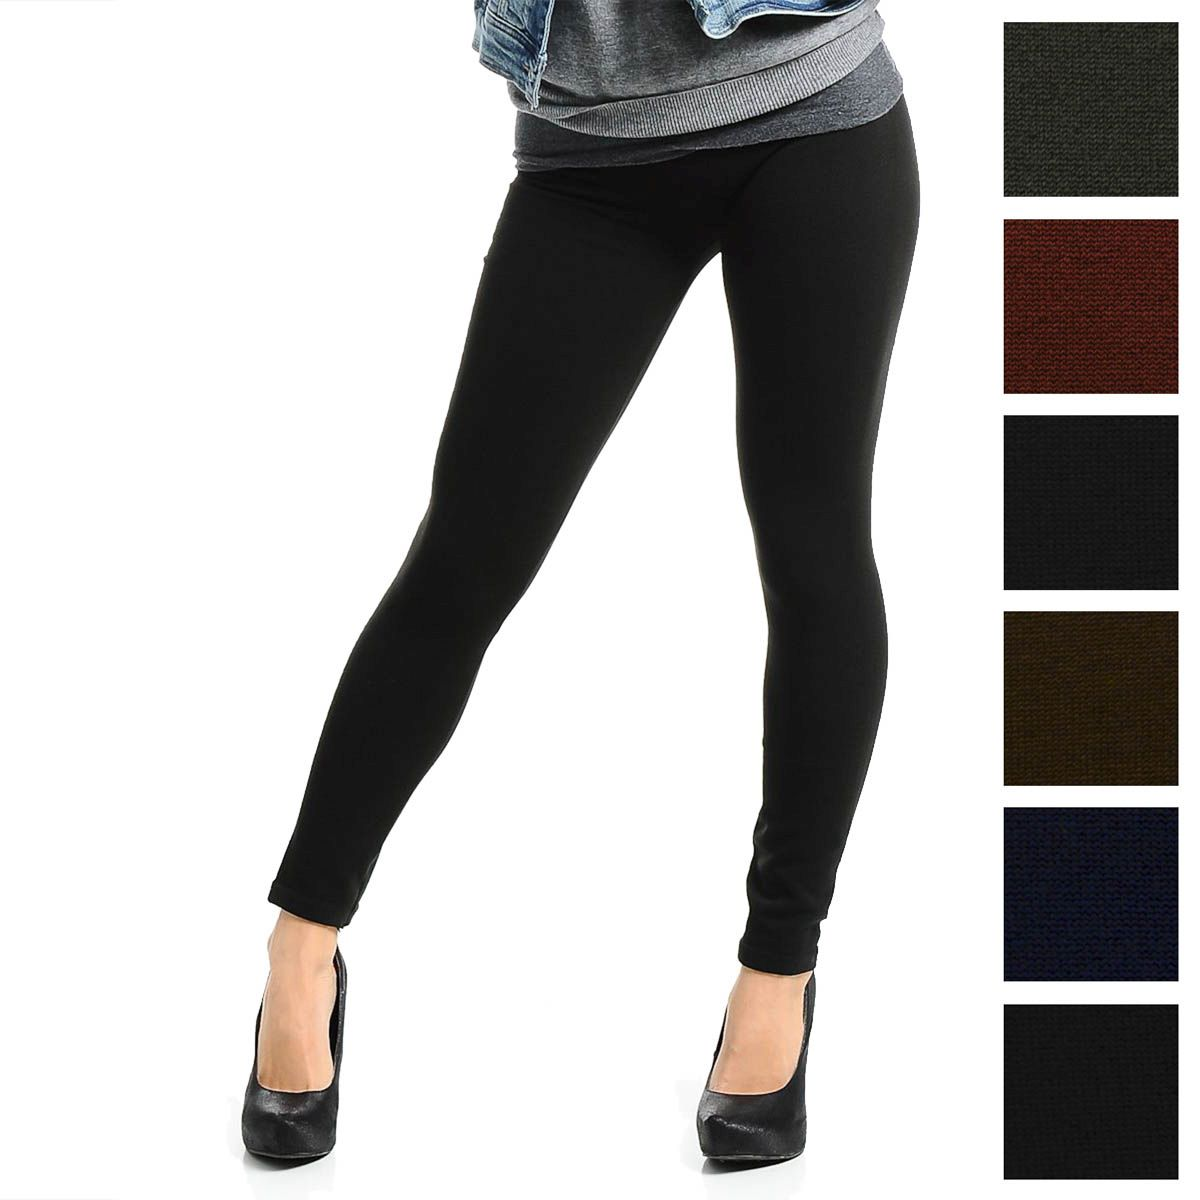 Fleece-Lined Leggings Opaque Footless Winter Warm Adult One Size Stretch